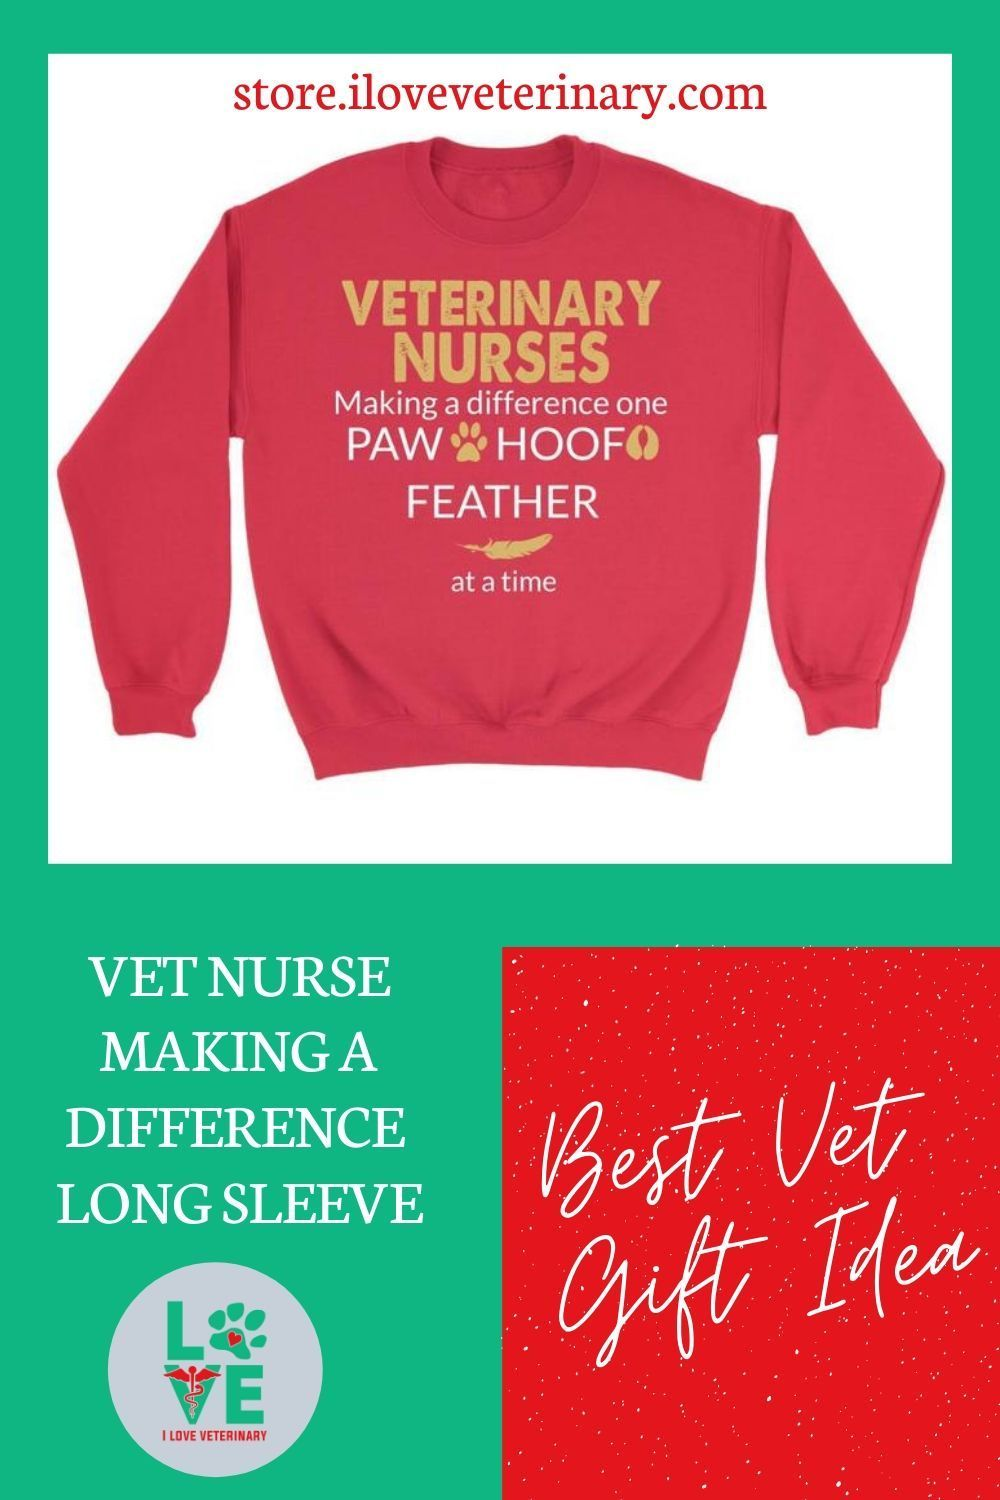 Pin on Gifts for Veterinarians